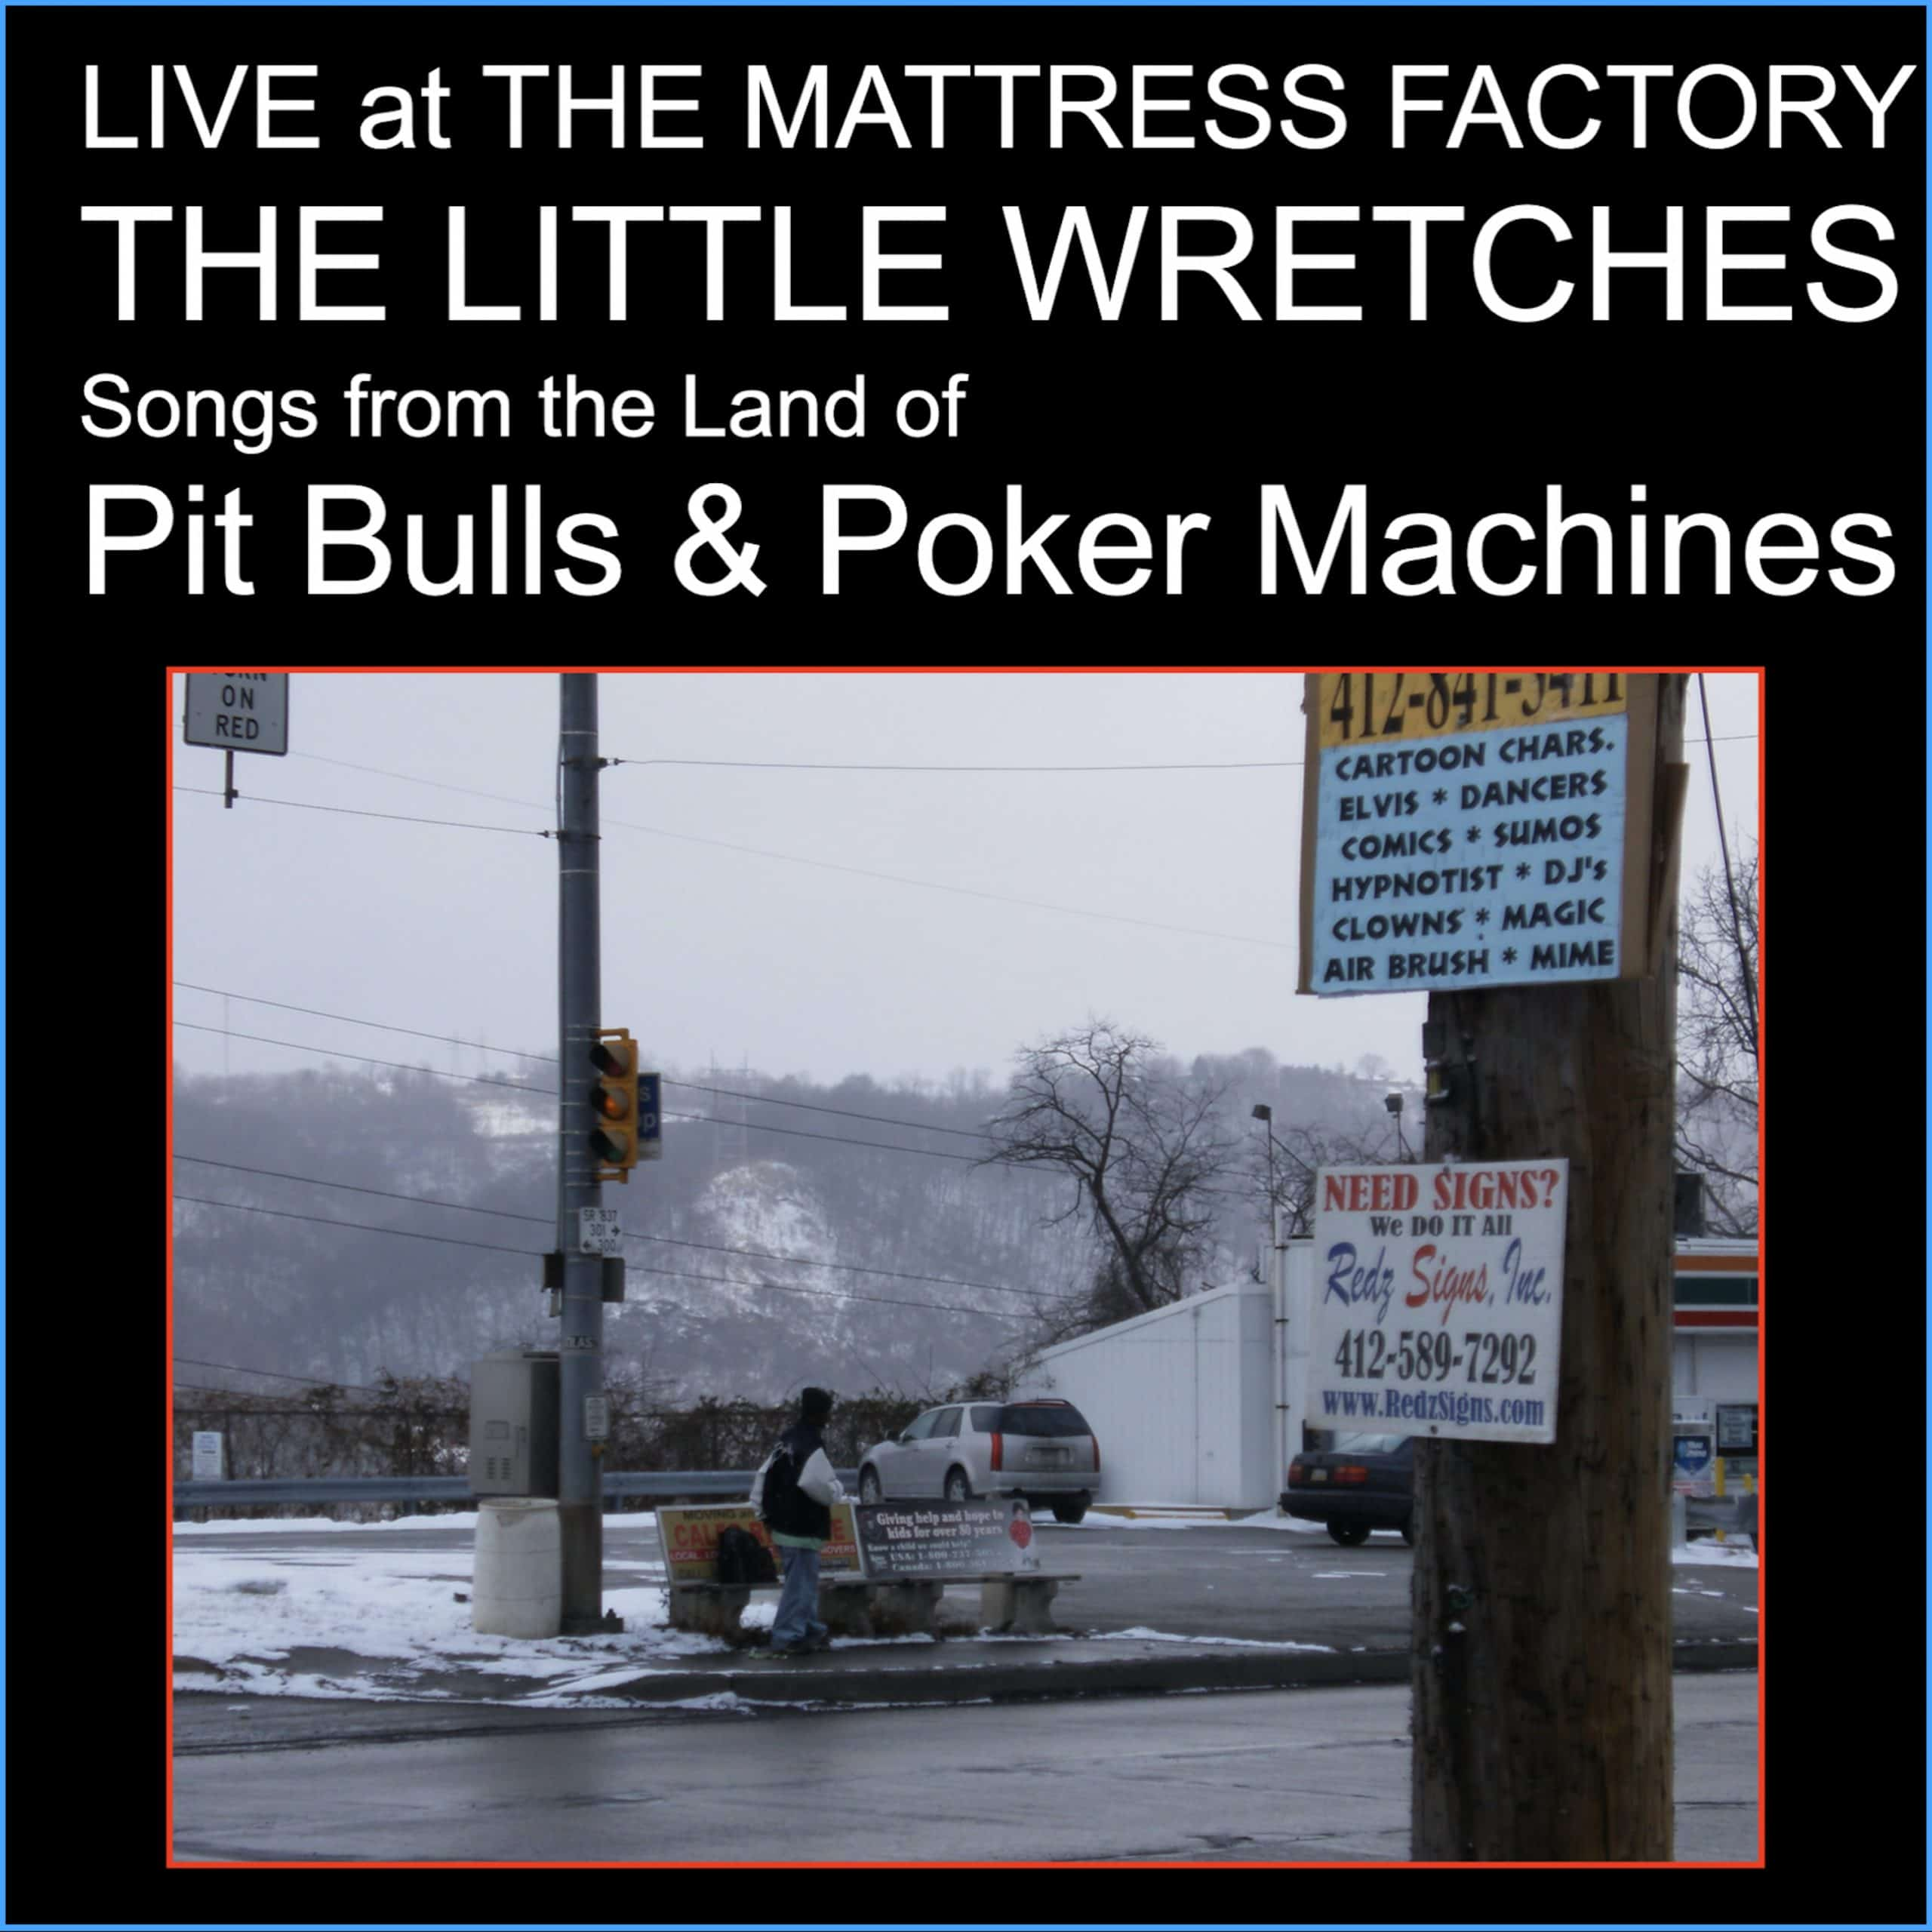 Robert Wagner Of Little Wretches Delivers Classic Live Version Of Current Single